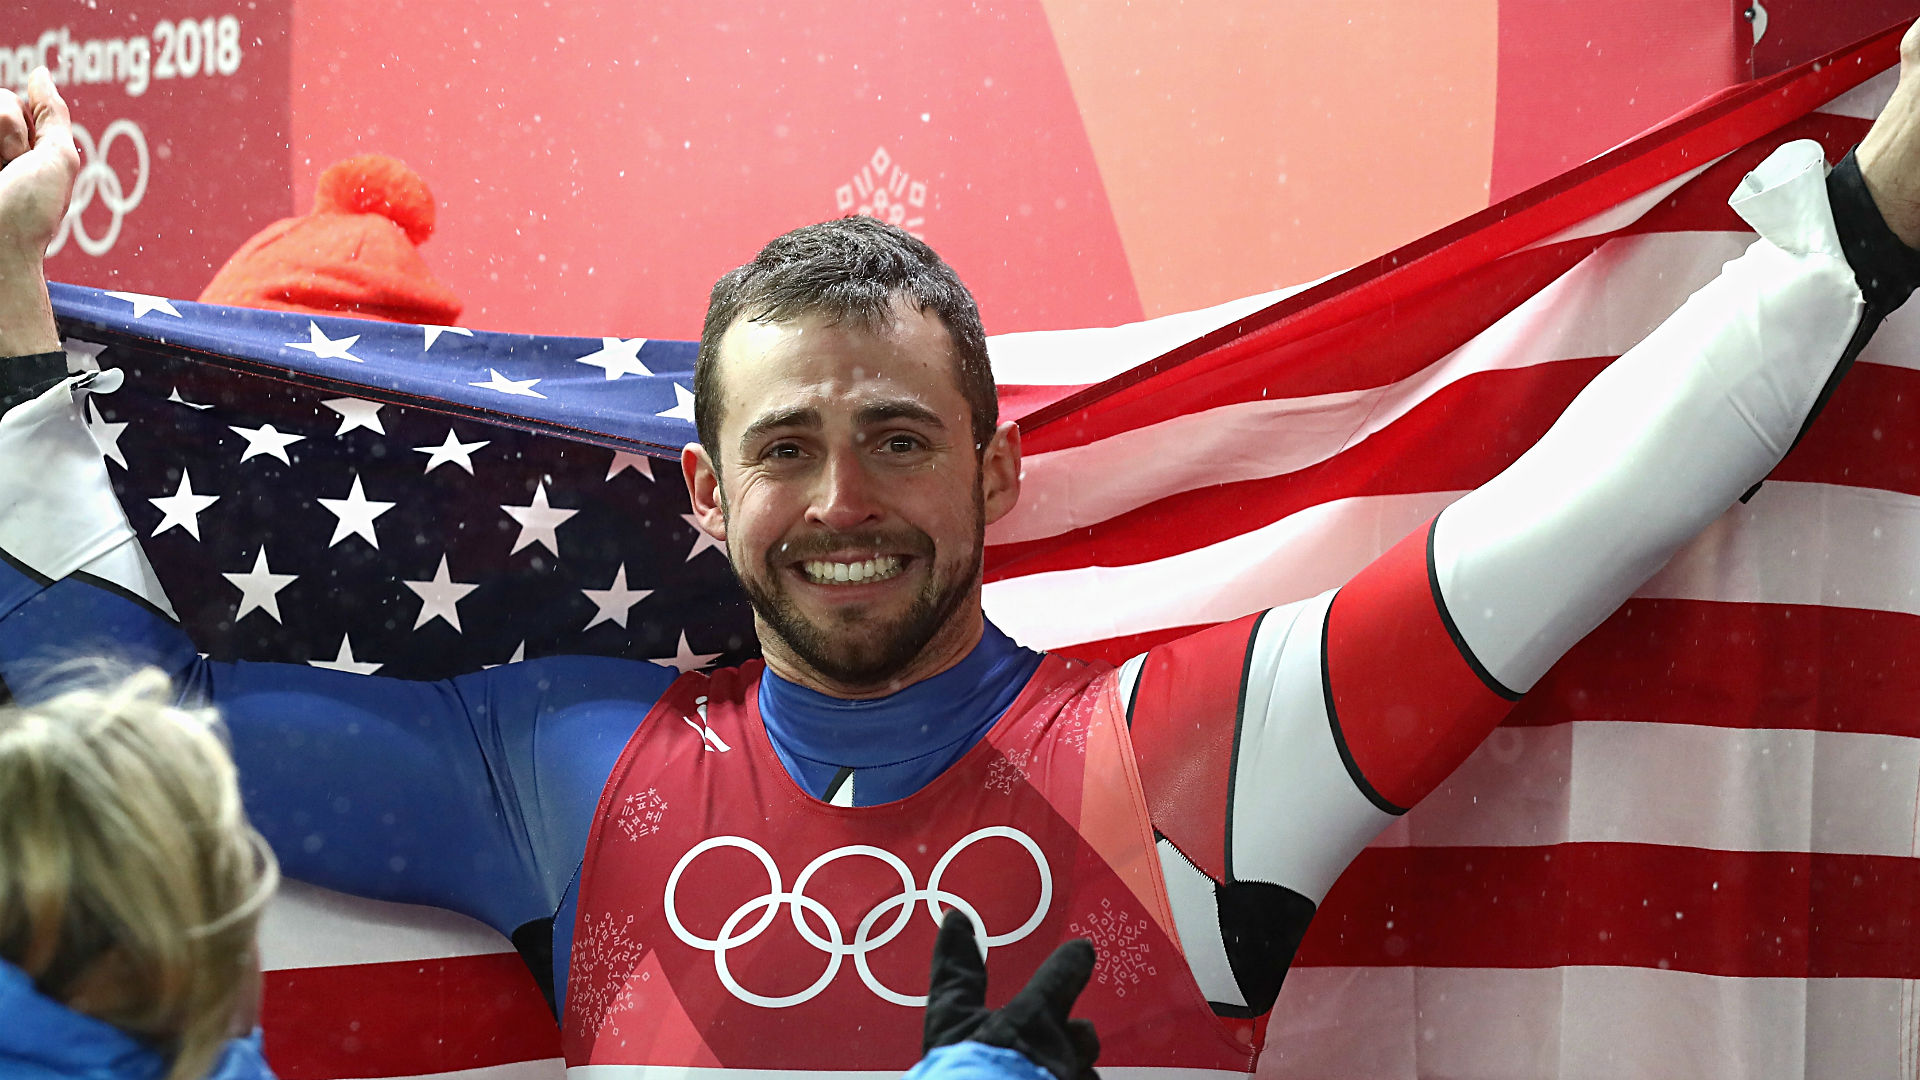 Austria's David Gleirscher wins shocking gold in men's singles luge